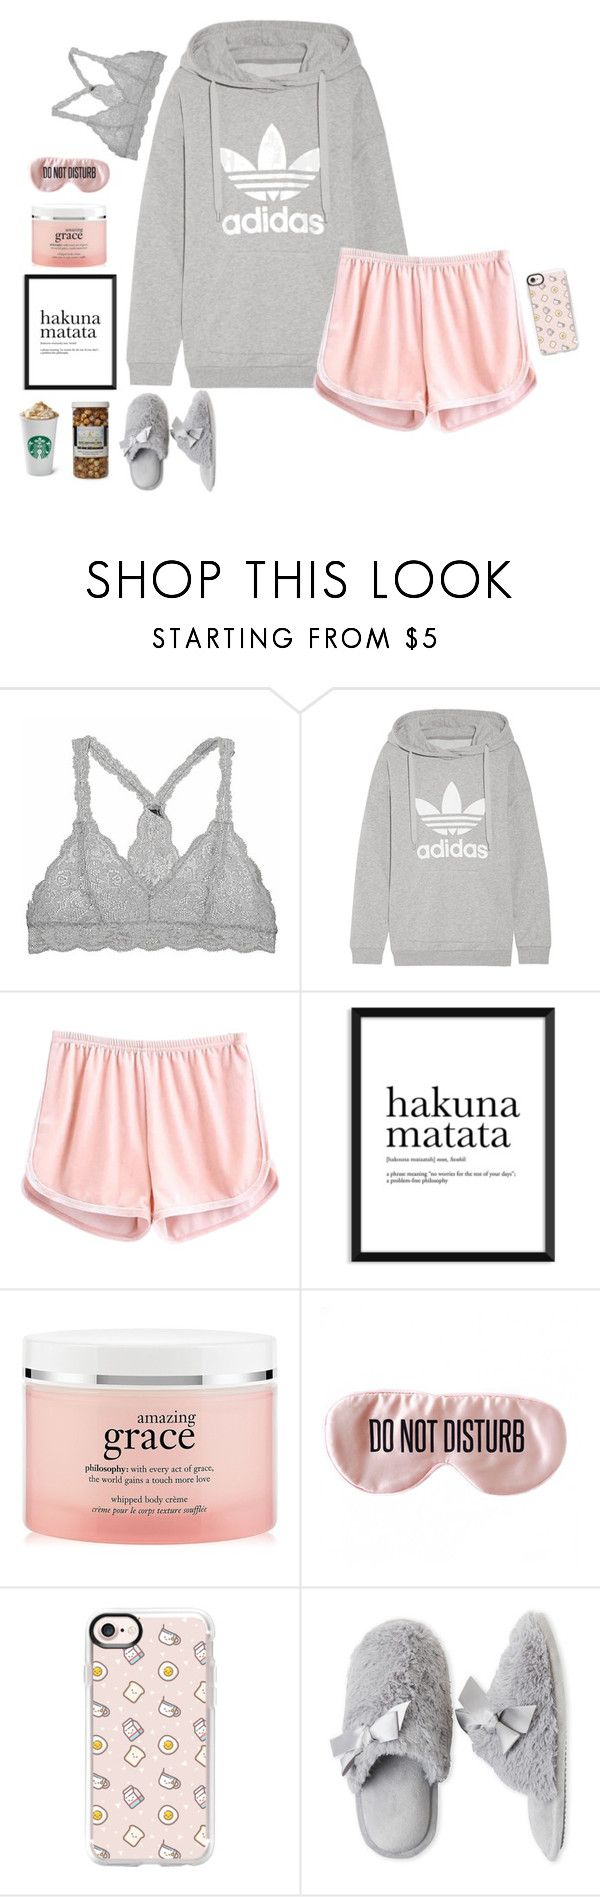 """sundayze"" by silver-sparkles ❤ liked on Polyvore featuring adidas Originals, philosophy, BaubleBar, Casetify, Dearfoams and The Hampton Popcorn Company"